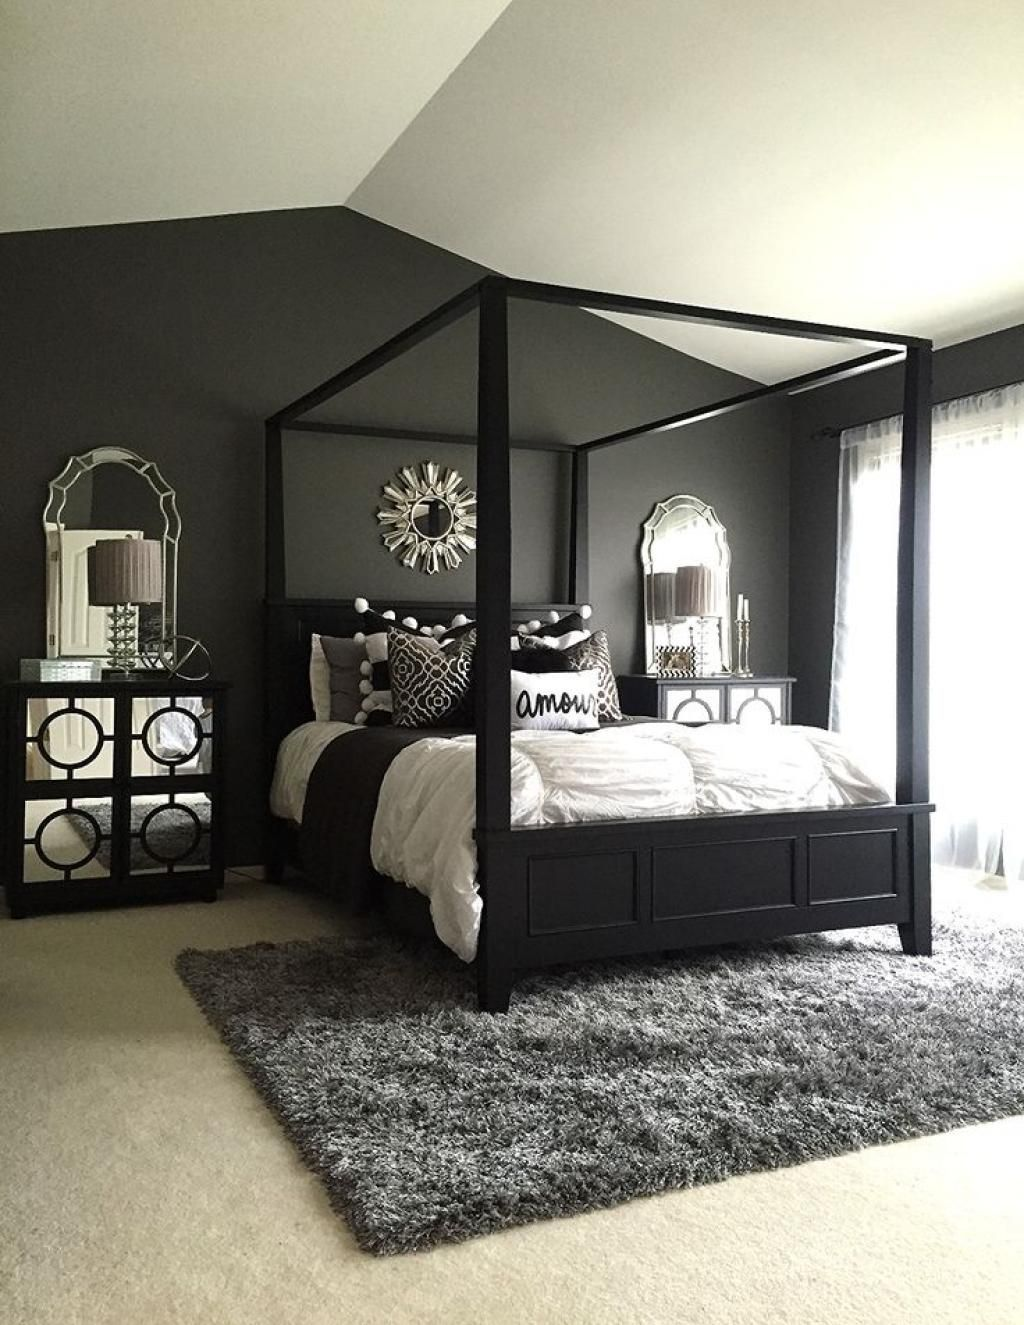 25 Elegant Black Bedroom Decorating Ideas Home Bedroom Bedroom